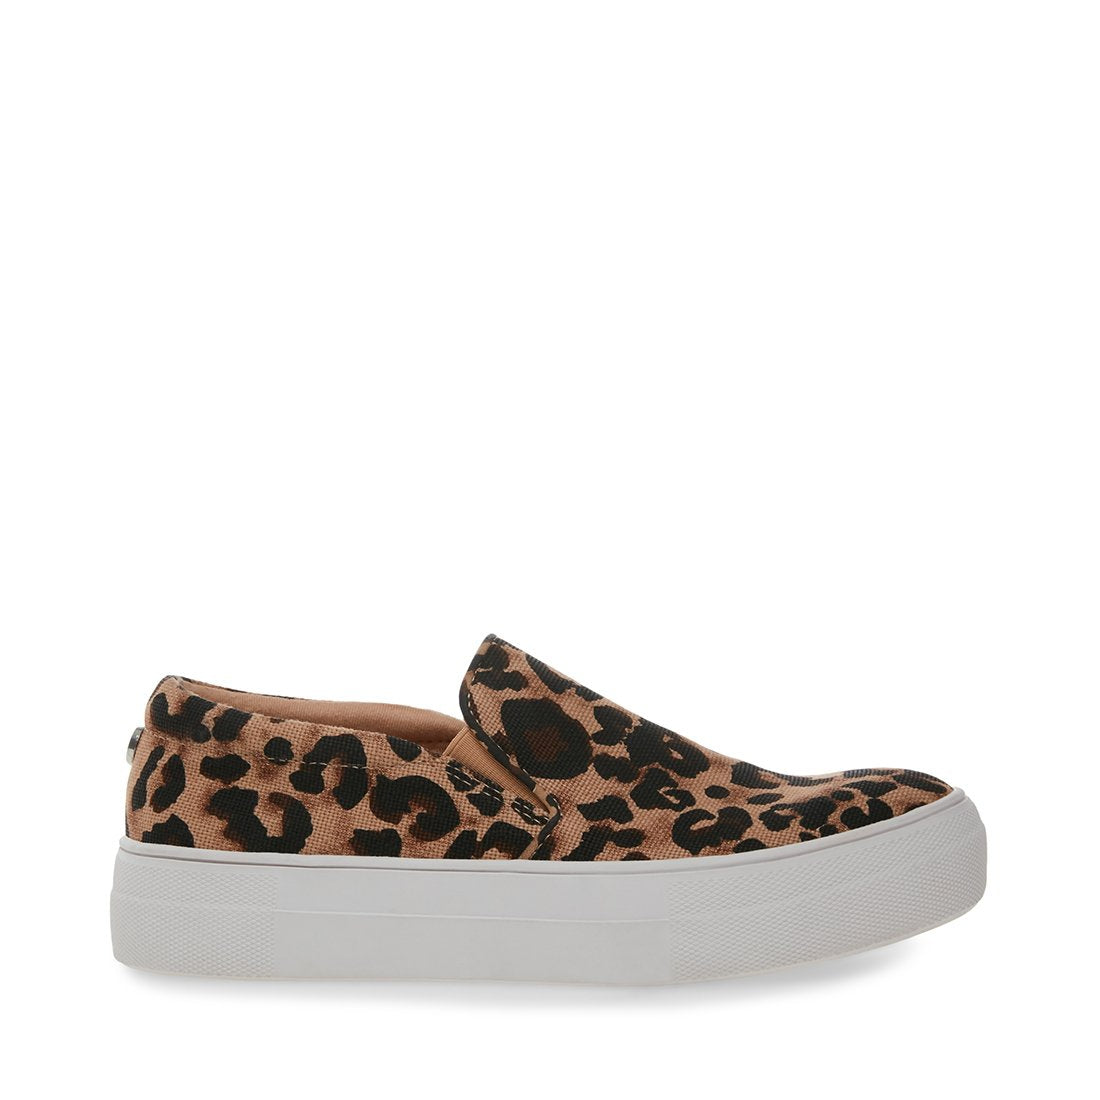 new design latest fashion buy cheap GILLS-A LEOPARD – Steve Madden